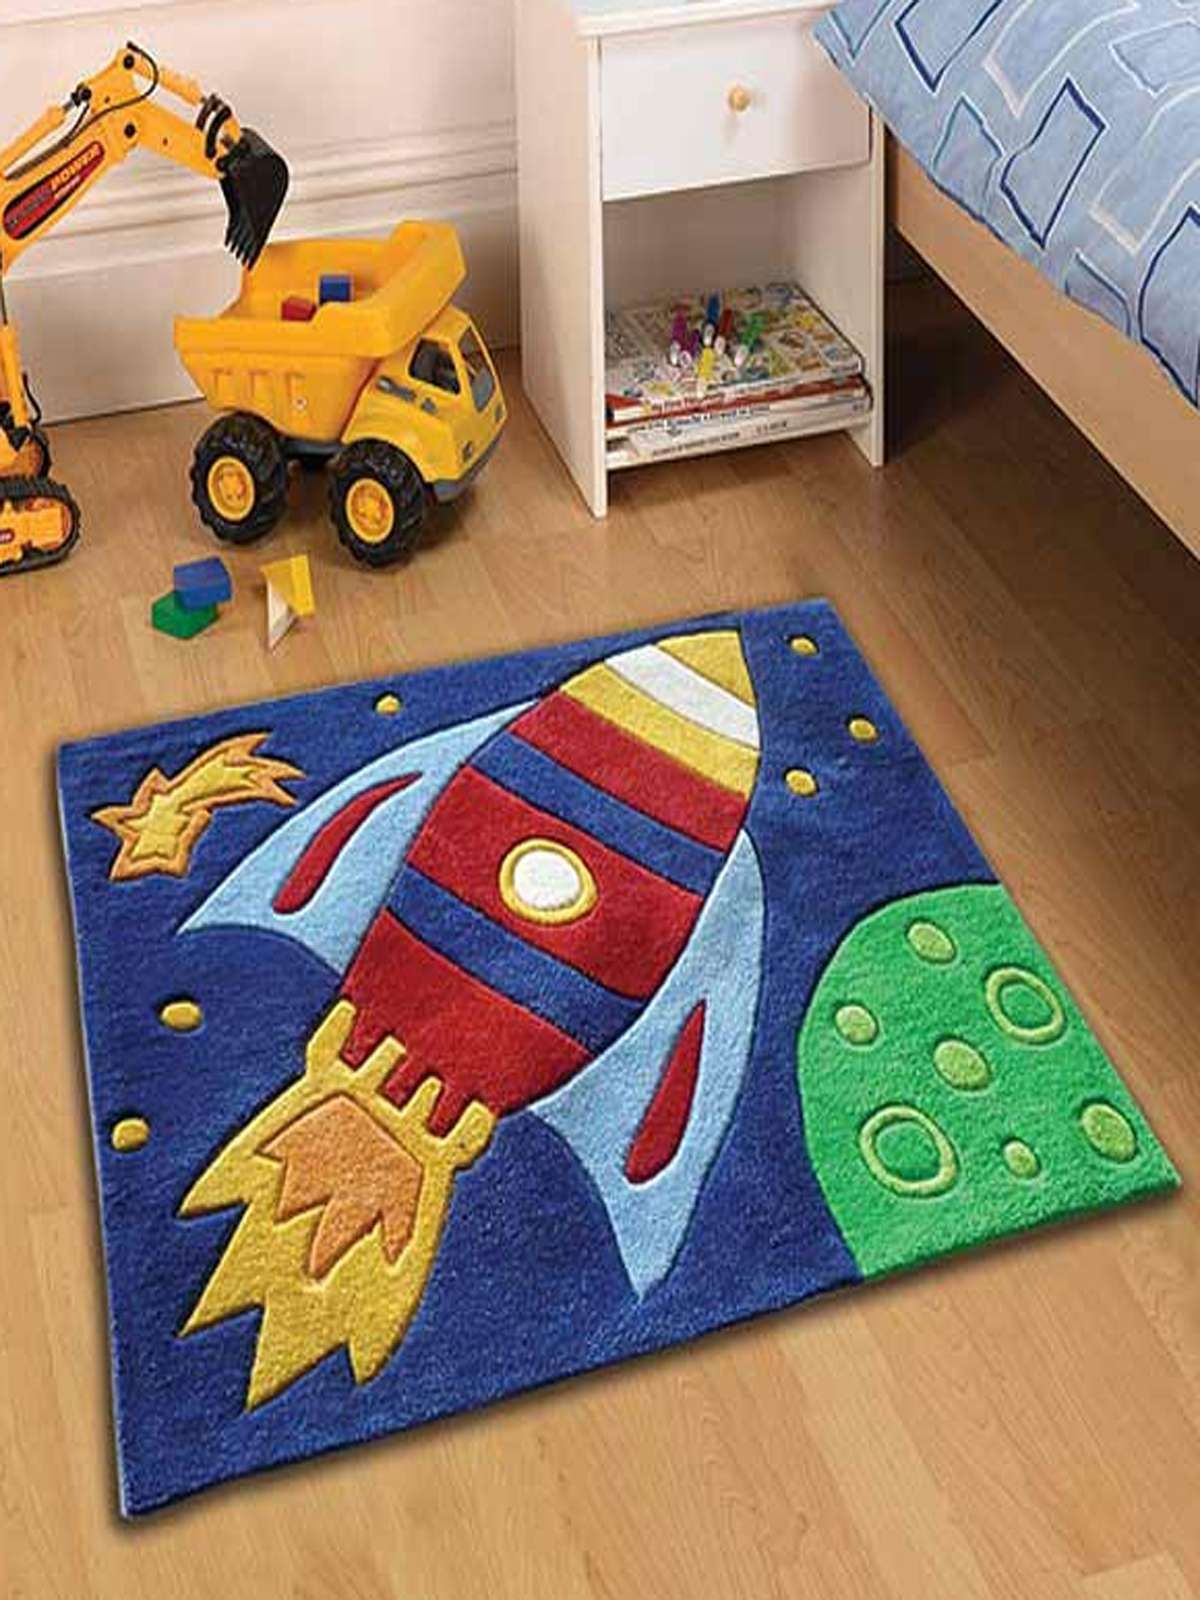 space rocket bedroom rug play space carpets for kids kids rugs childrens rugs. Black Bedroom Furniture Sets. Home Design Ideas